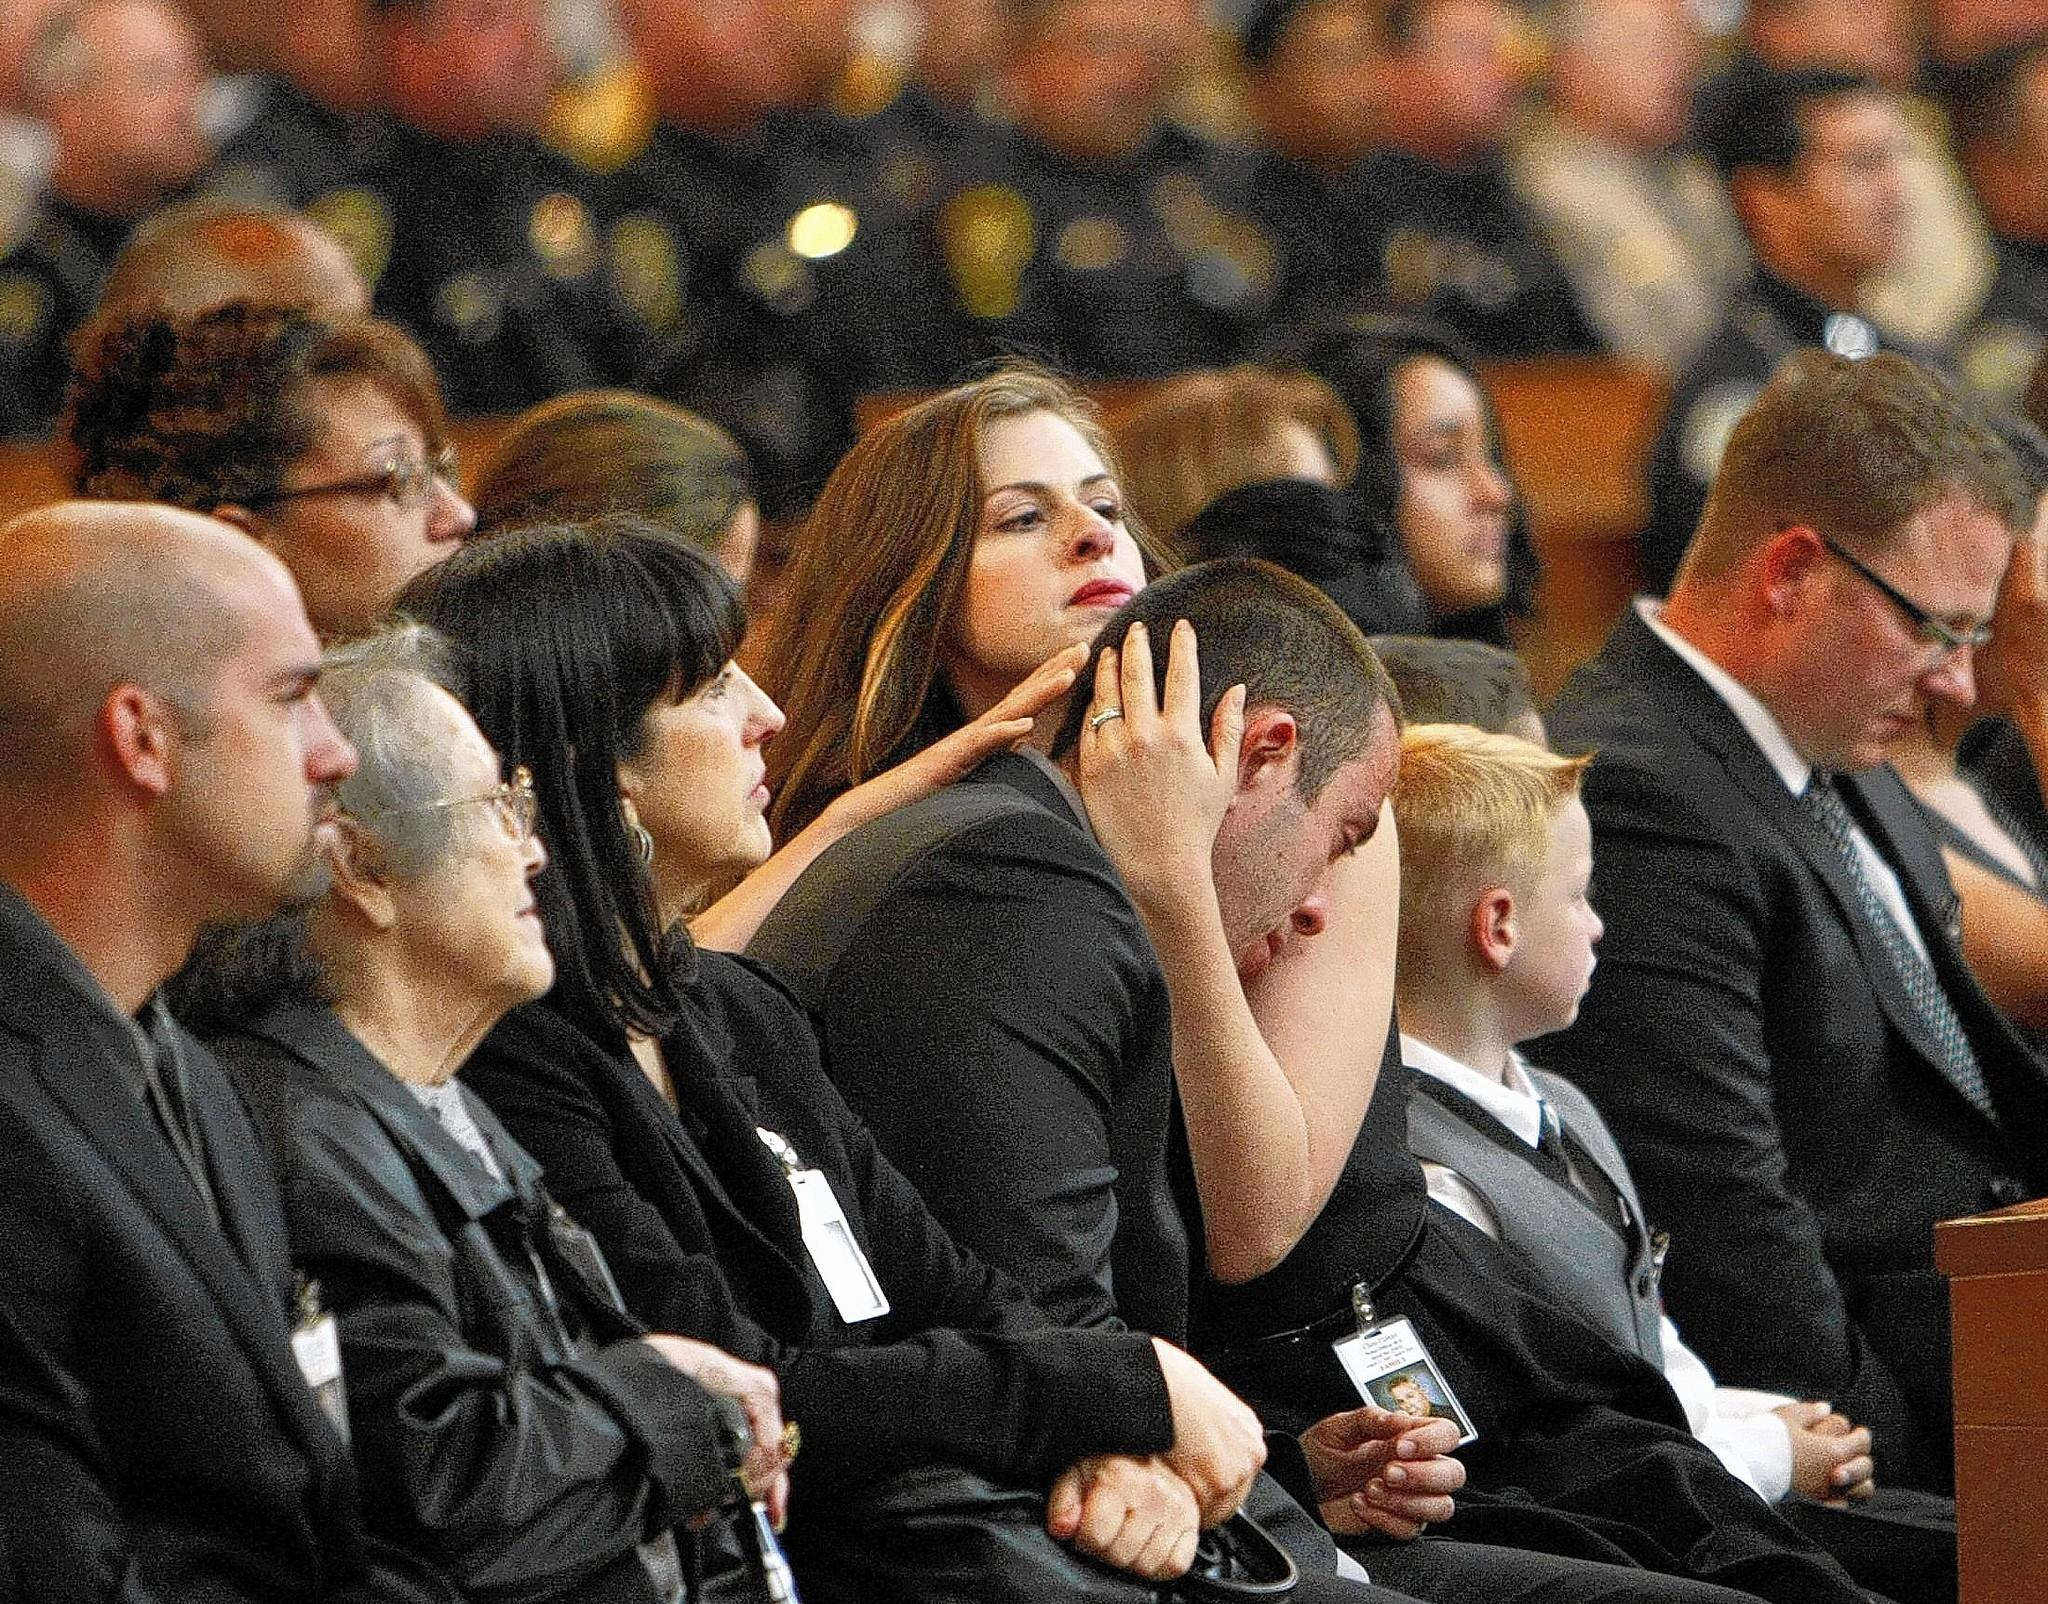 Christina Beal and Jonathan Cortijo, daughter and son of LAPD Officer Christopher A. Cortijo, after speaking at their father's funeral Mass at the Cathedral of Our Lady of the Angels in downtown Los Angeles.